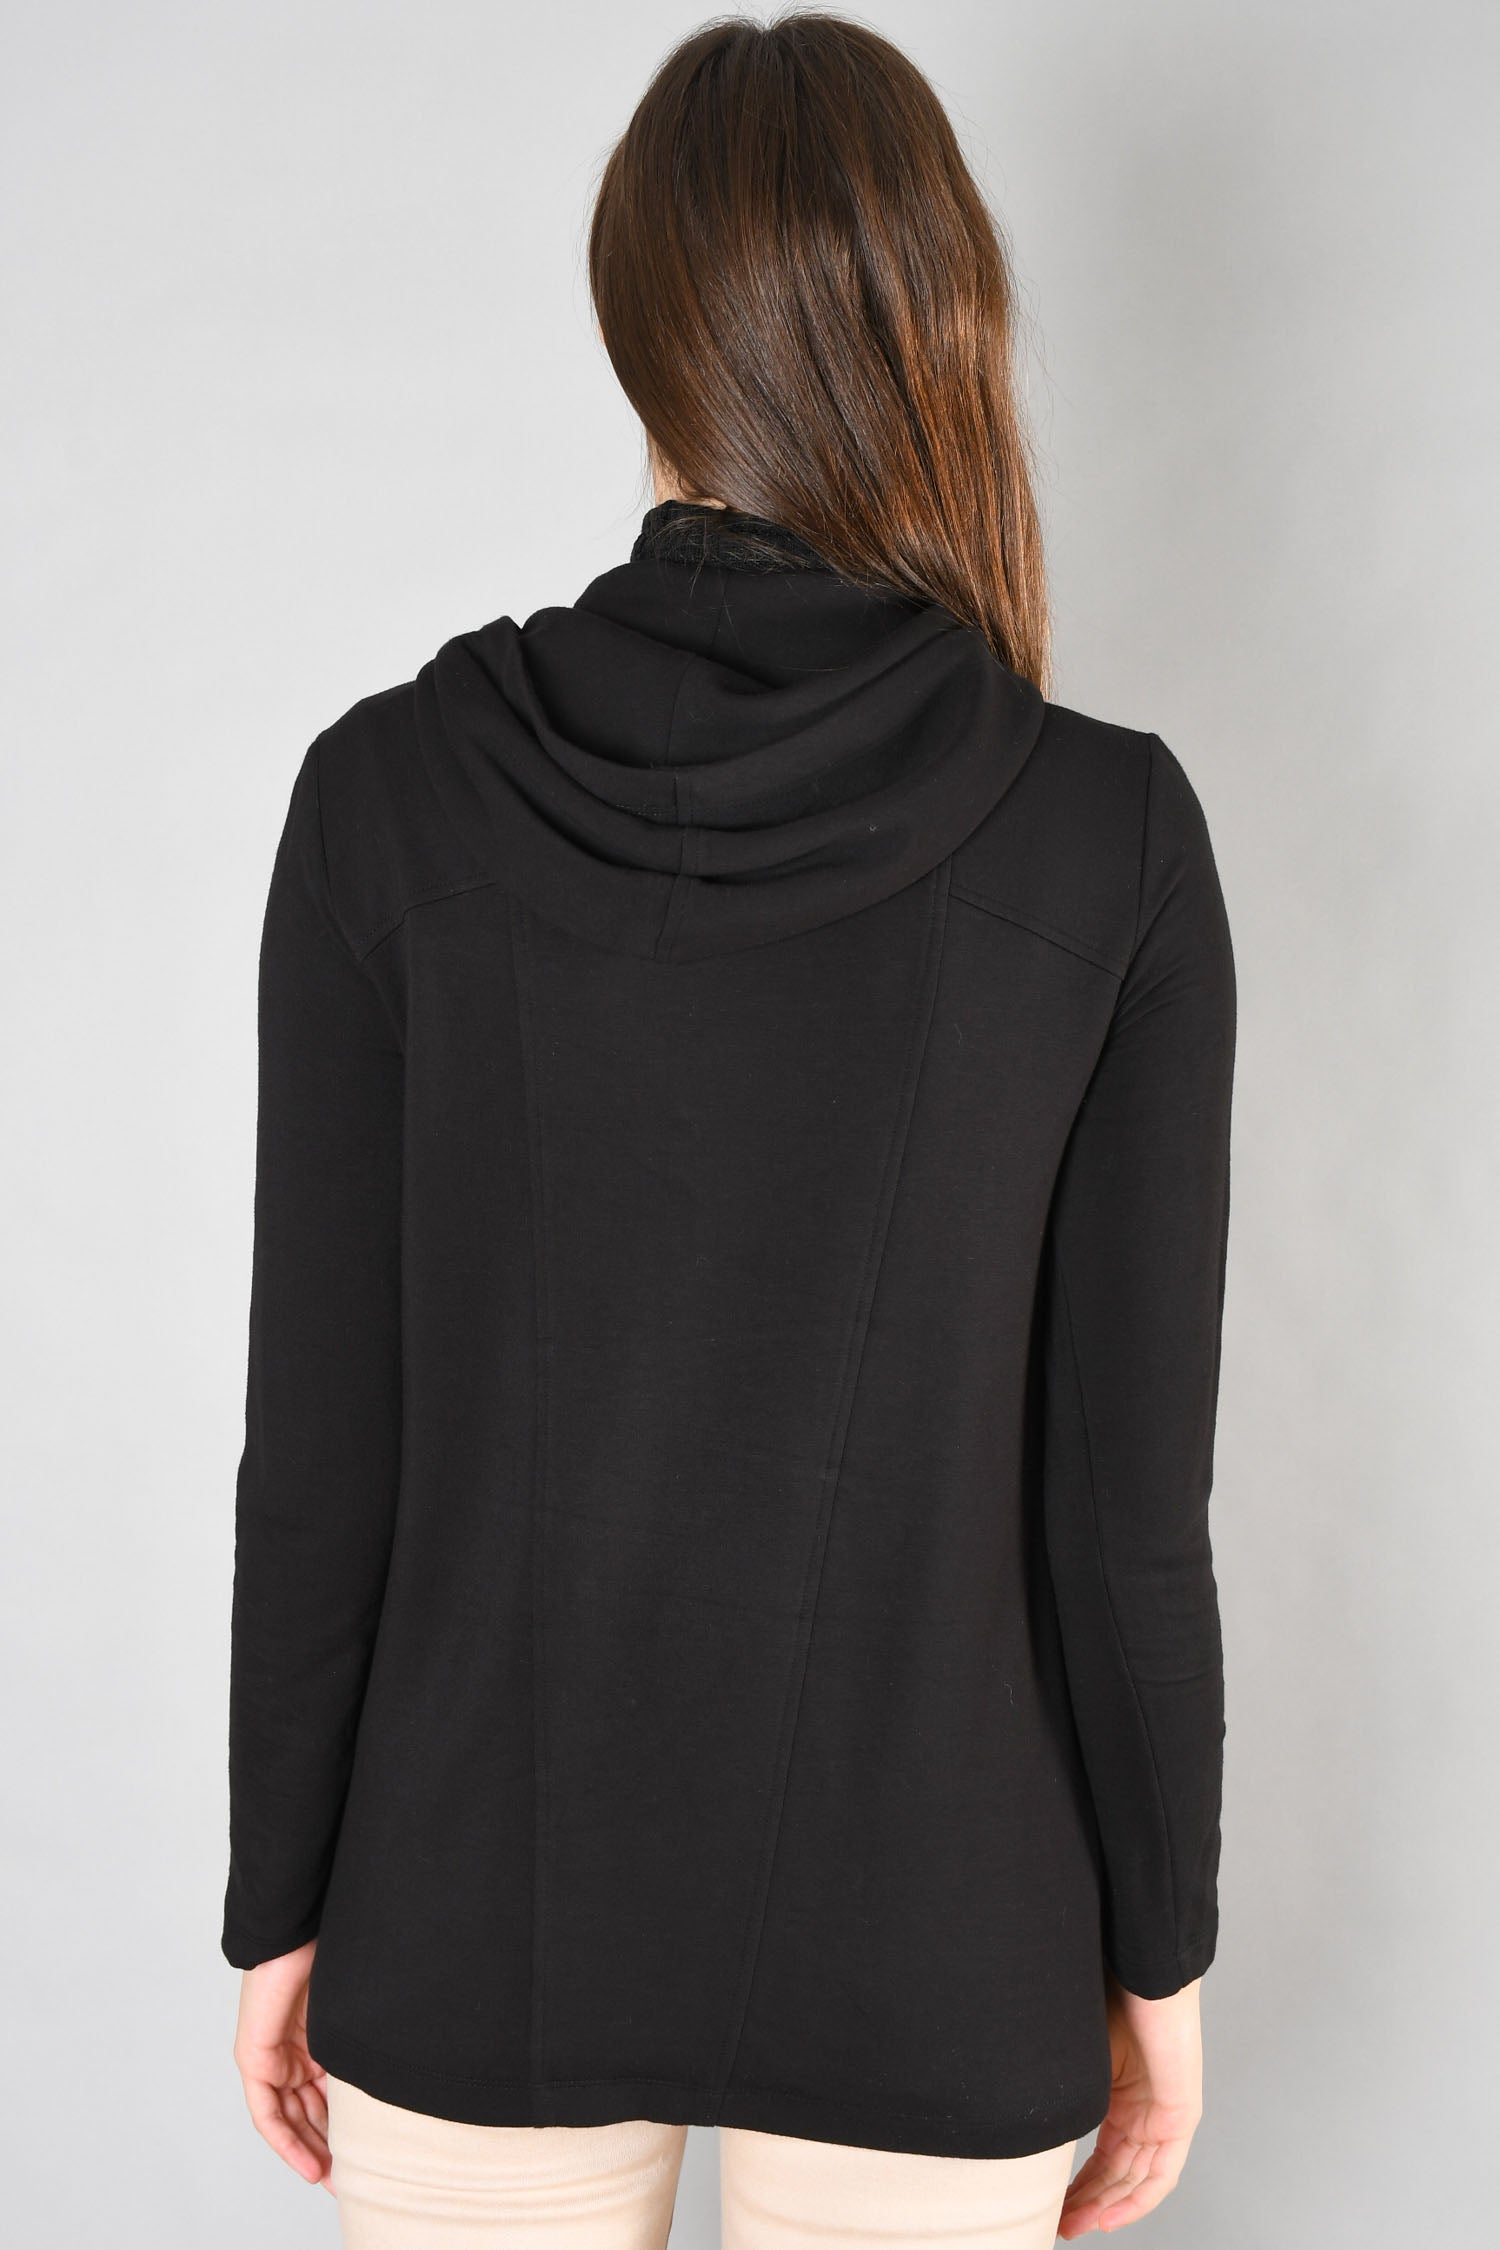 Helmut Lang Black Asymmetrical Zip Up Hoodie Size S